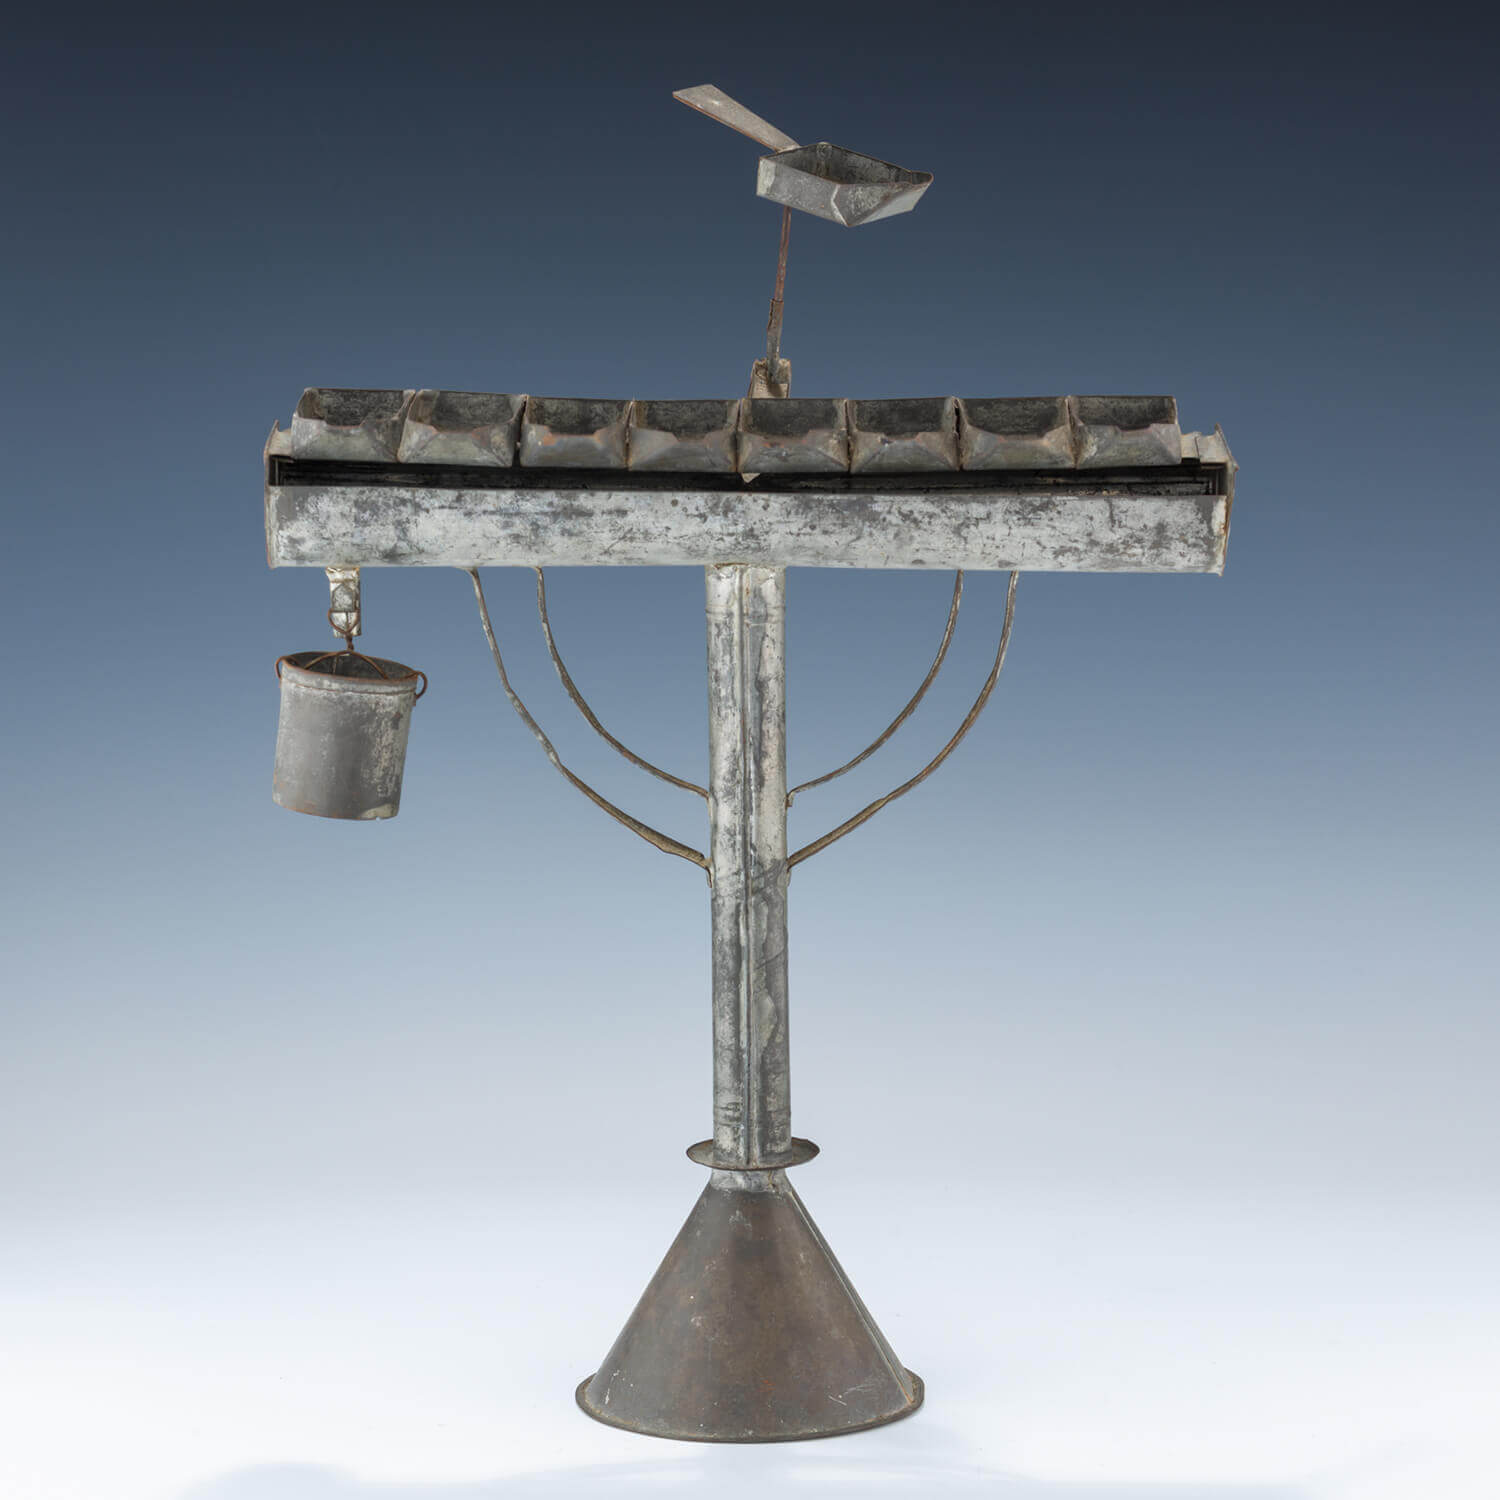 137. A RARE AND IMPORTANT TIN HANUKKAH MENORAH